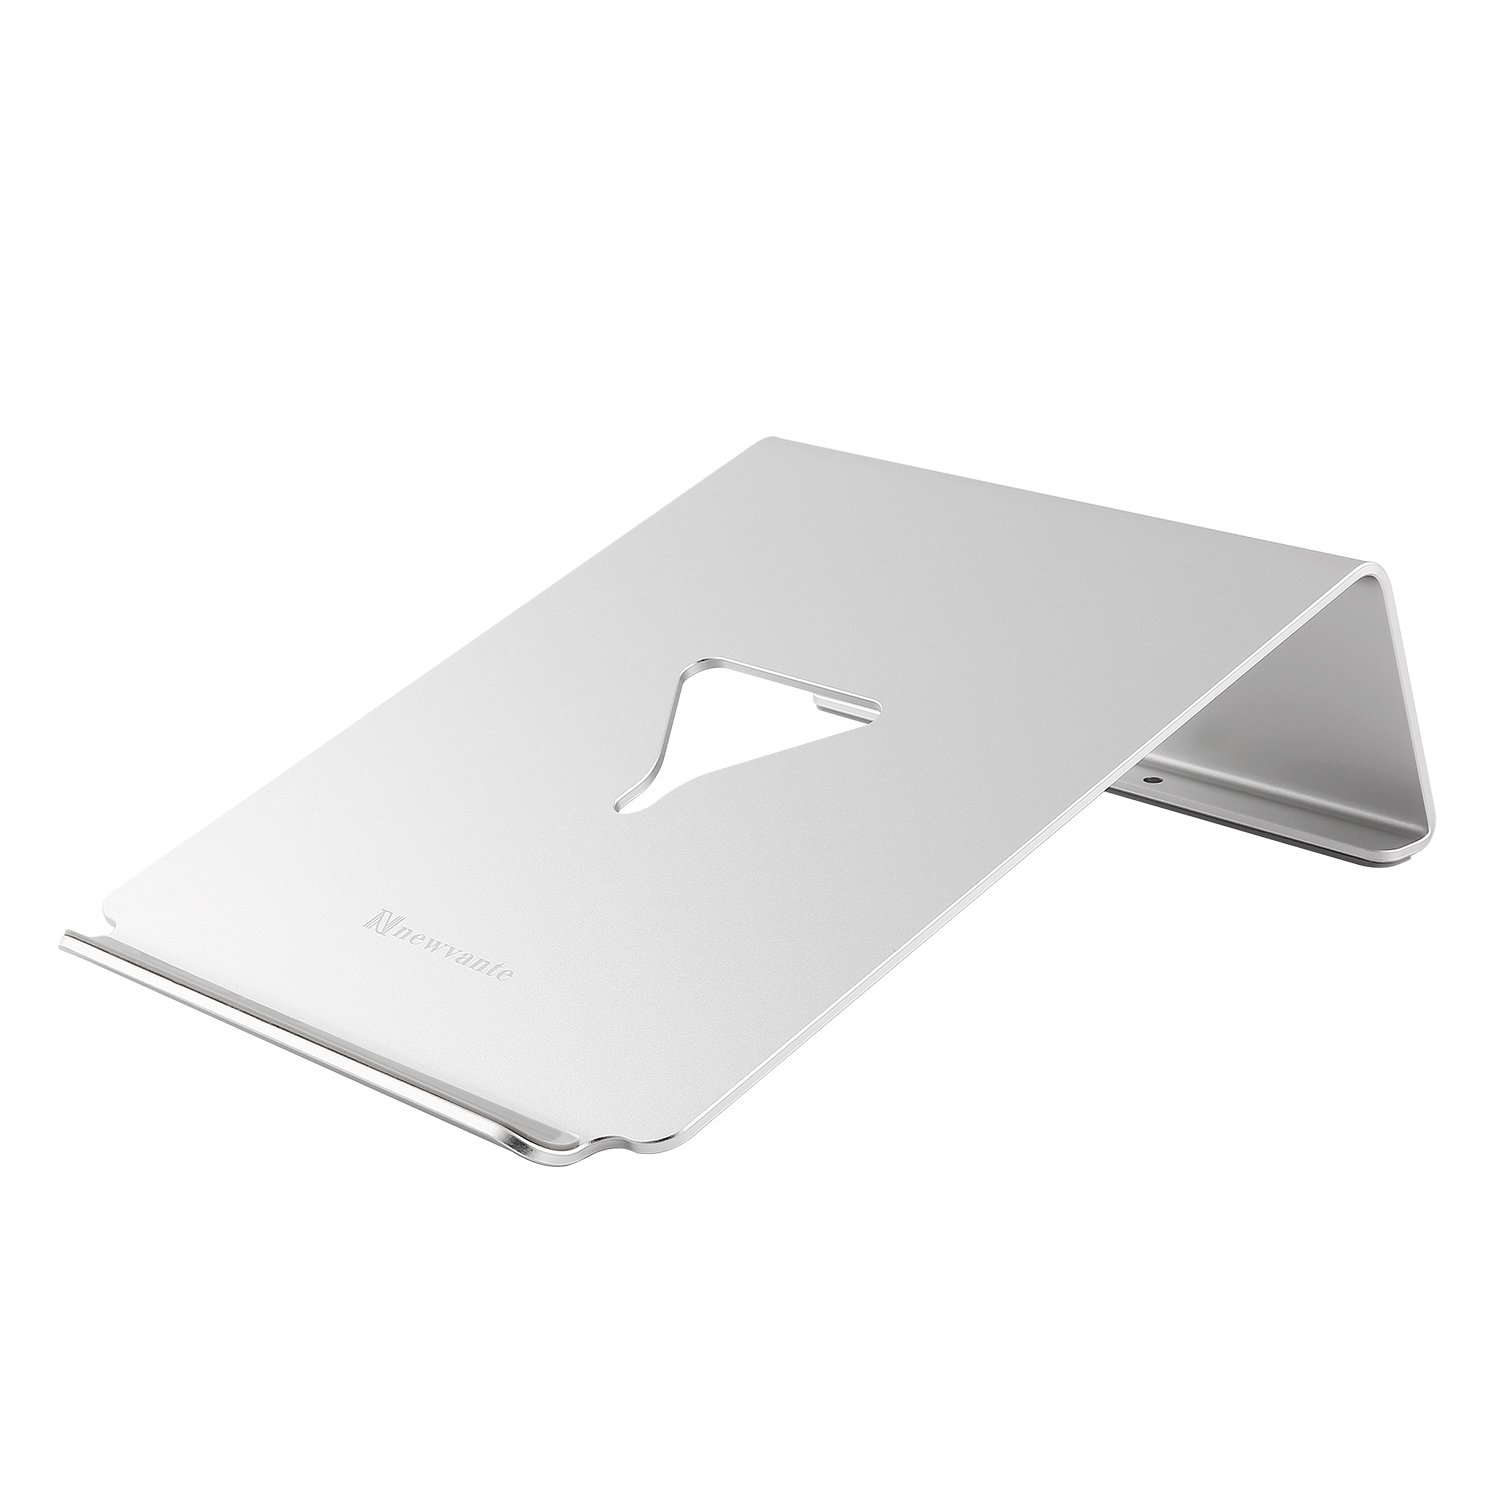 NNEWVANTE Laptop Stand Aluminum Ventilated Ergonomic 16°Pad Holder Universal Compatible for Laptop MacBook Notebook iPad (Silver)